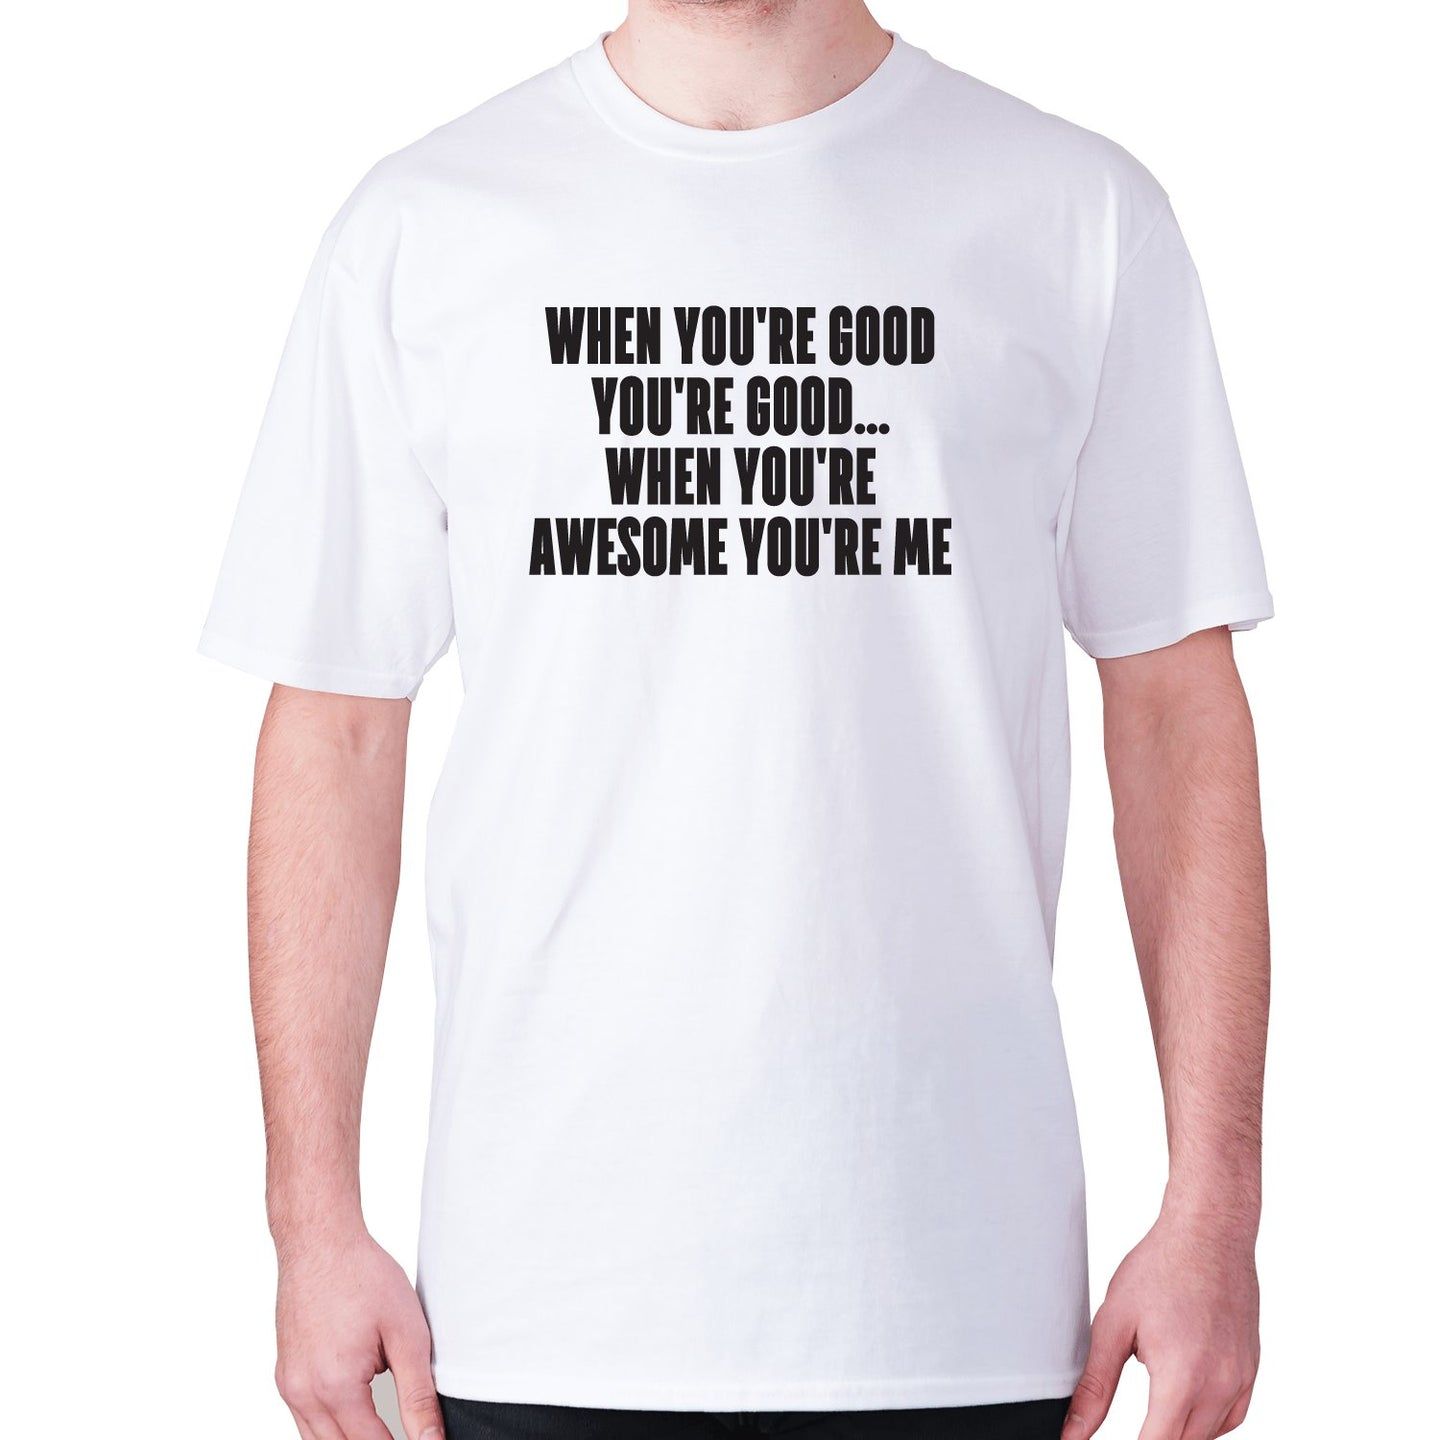 When you're good you're good... when you're awesome you're me - men's premium t-shirt - White / S - Graphic Gear